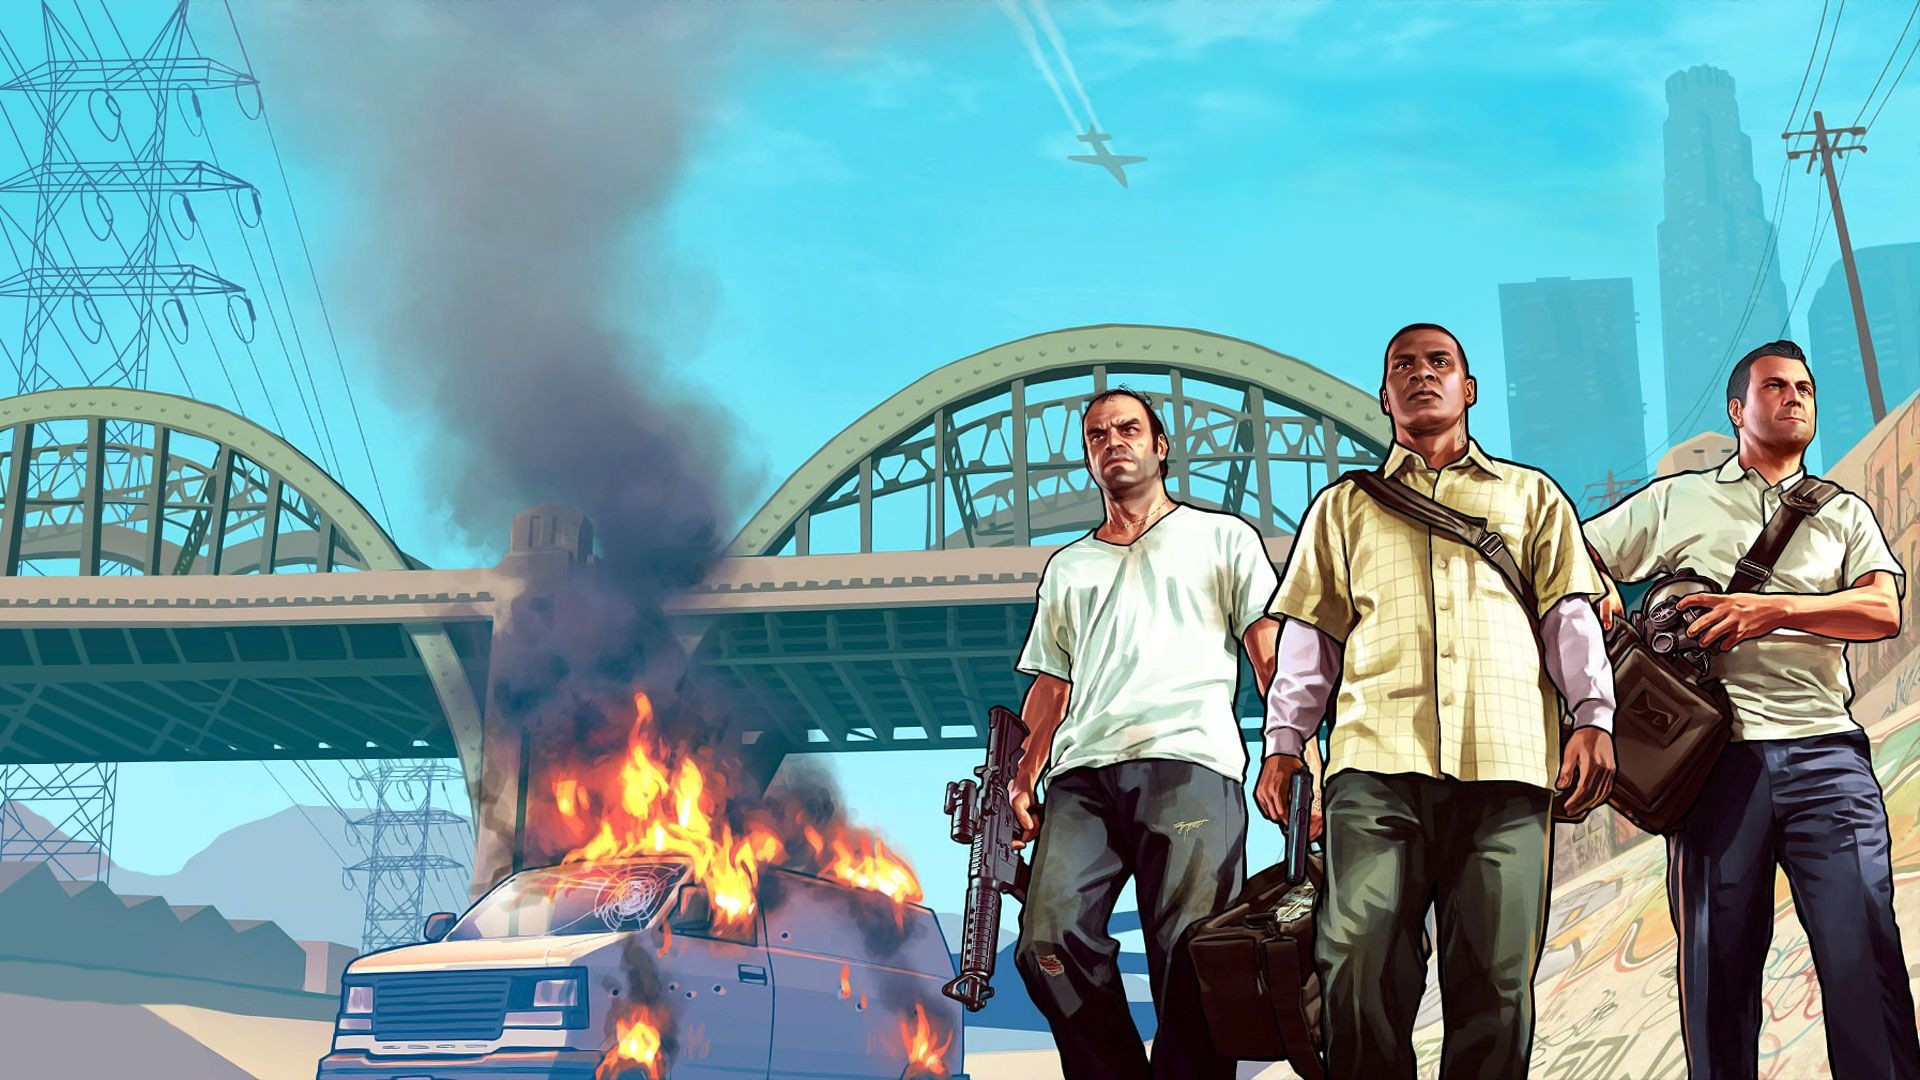 Grand Theft Auto 5 Wallpapers High Quality